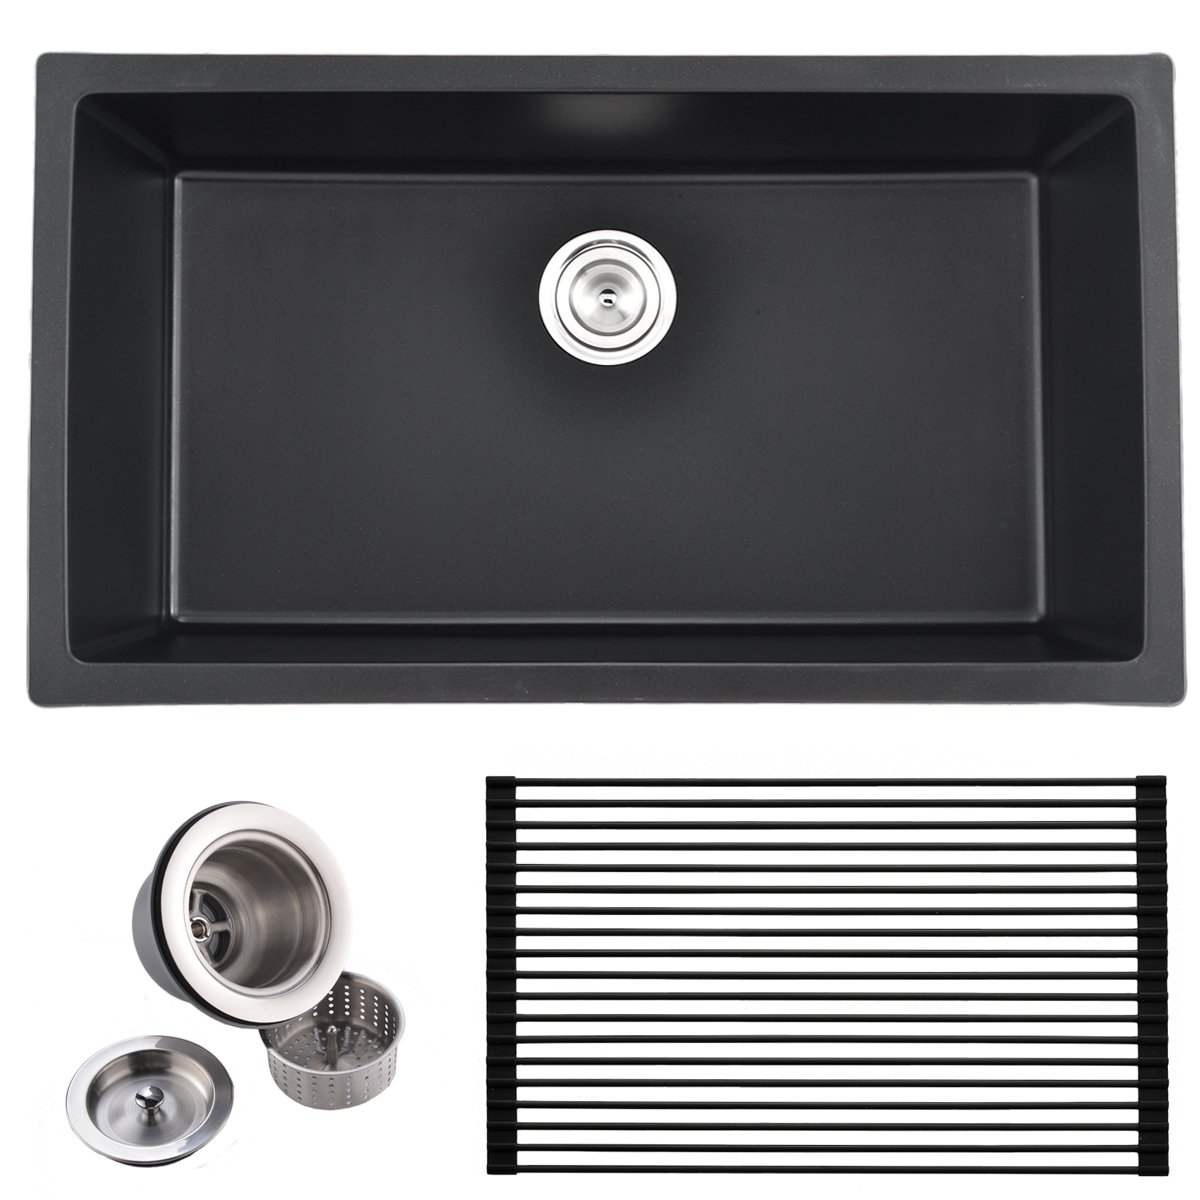 Best Commercial 31 Inch Handmade Single Bowl Undermount Drop in Black Onyx Granite Kitchen Sink, Included Dish Rack and Drain Assembly. by VCCUCINE